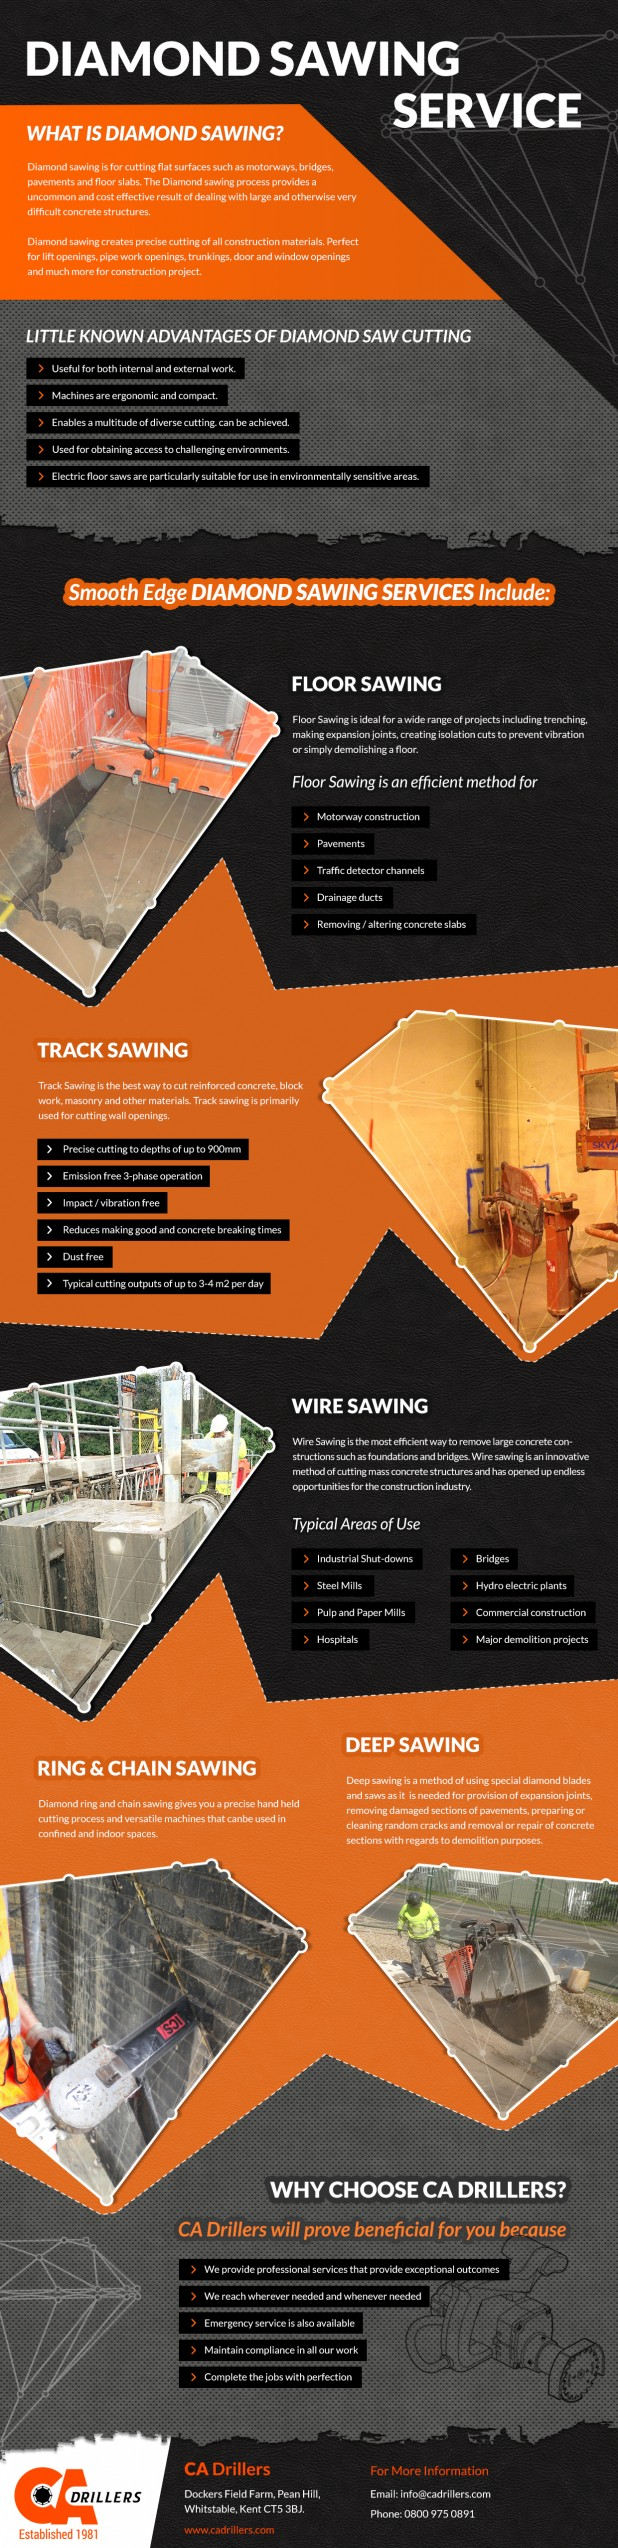 Diamond Sawing Services - Infographic